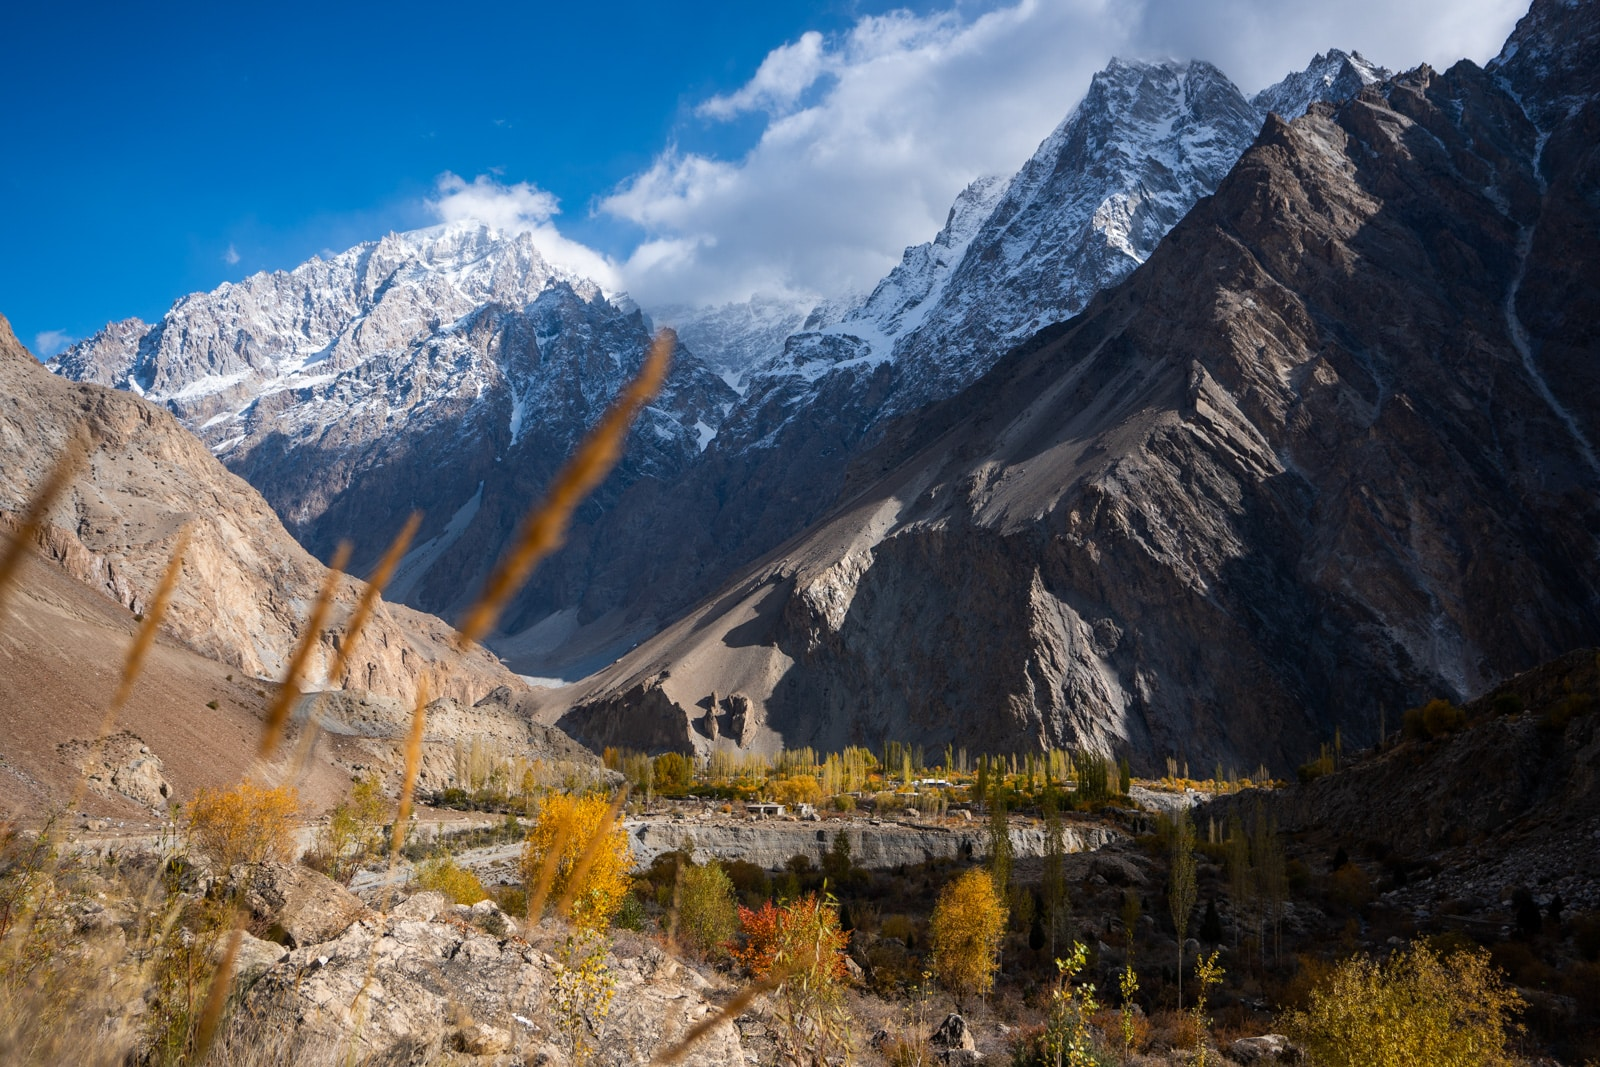 Autumn in Khyber, Gilgit Baltistan, Pakistan